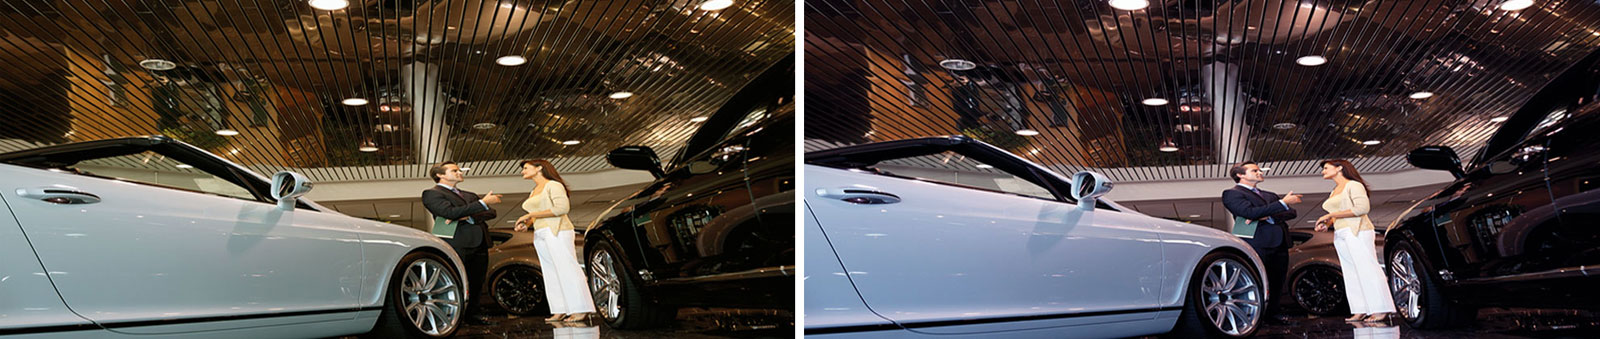 Car Showroom merchandised with regular LEDs (left pic) compared with Promolux LEDs (right pic)